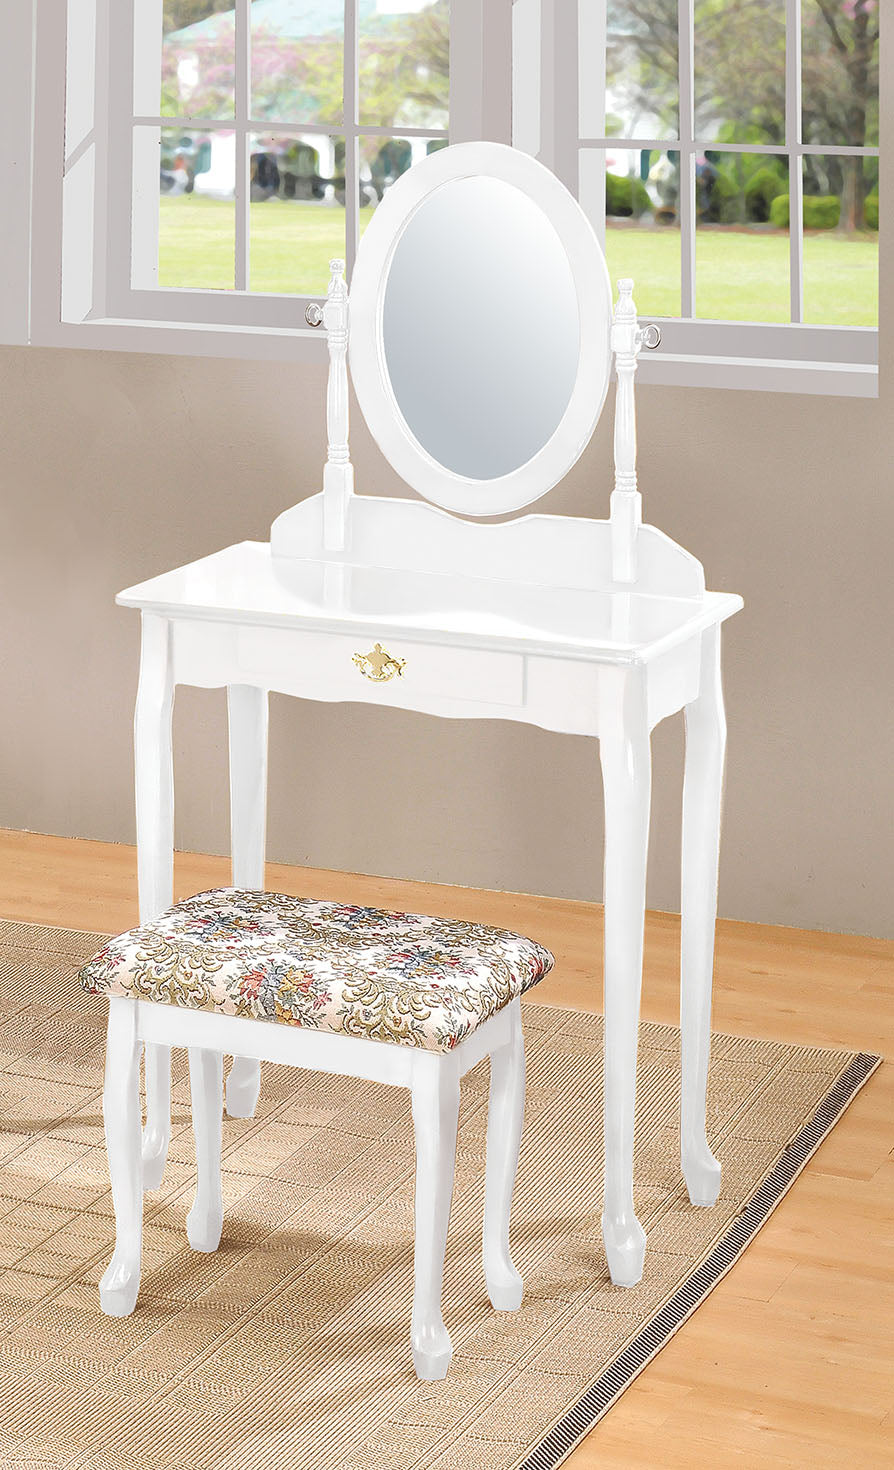 Acme WH Queen Anne White Drawer Vanity Set Mirror Stool